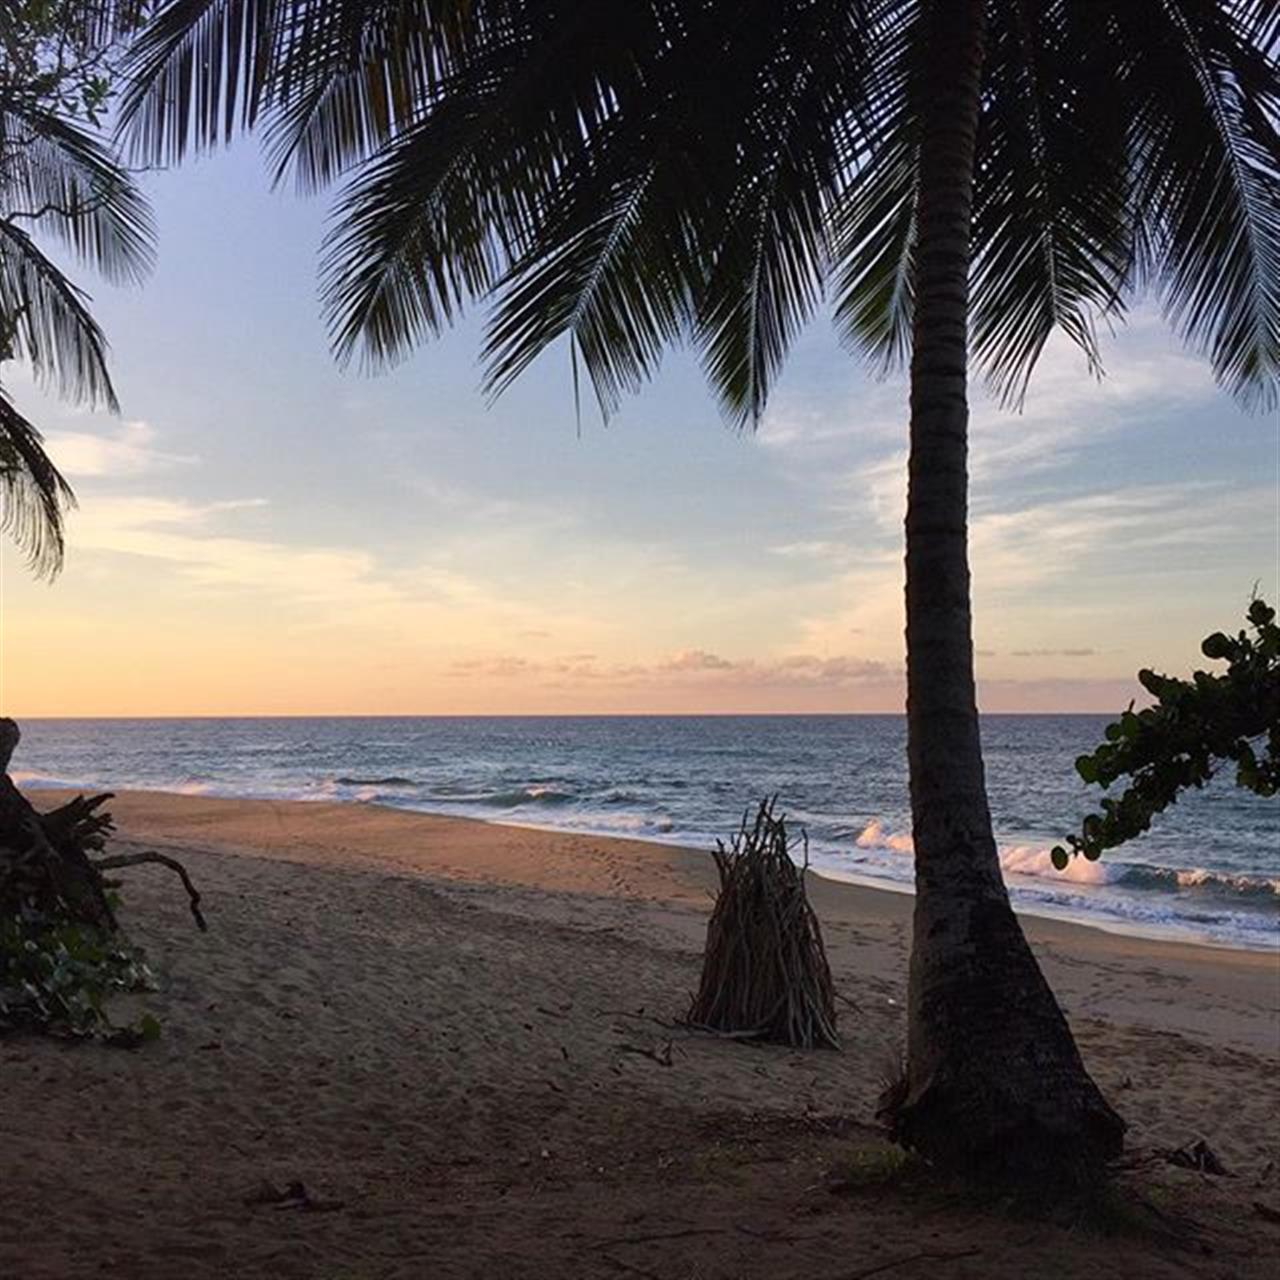 Friday evening on the north coast of the Dominican Republic #dominicanrepublic